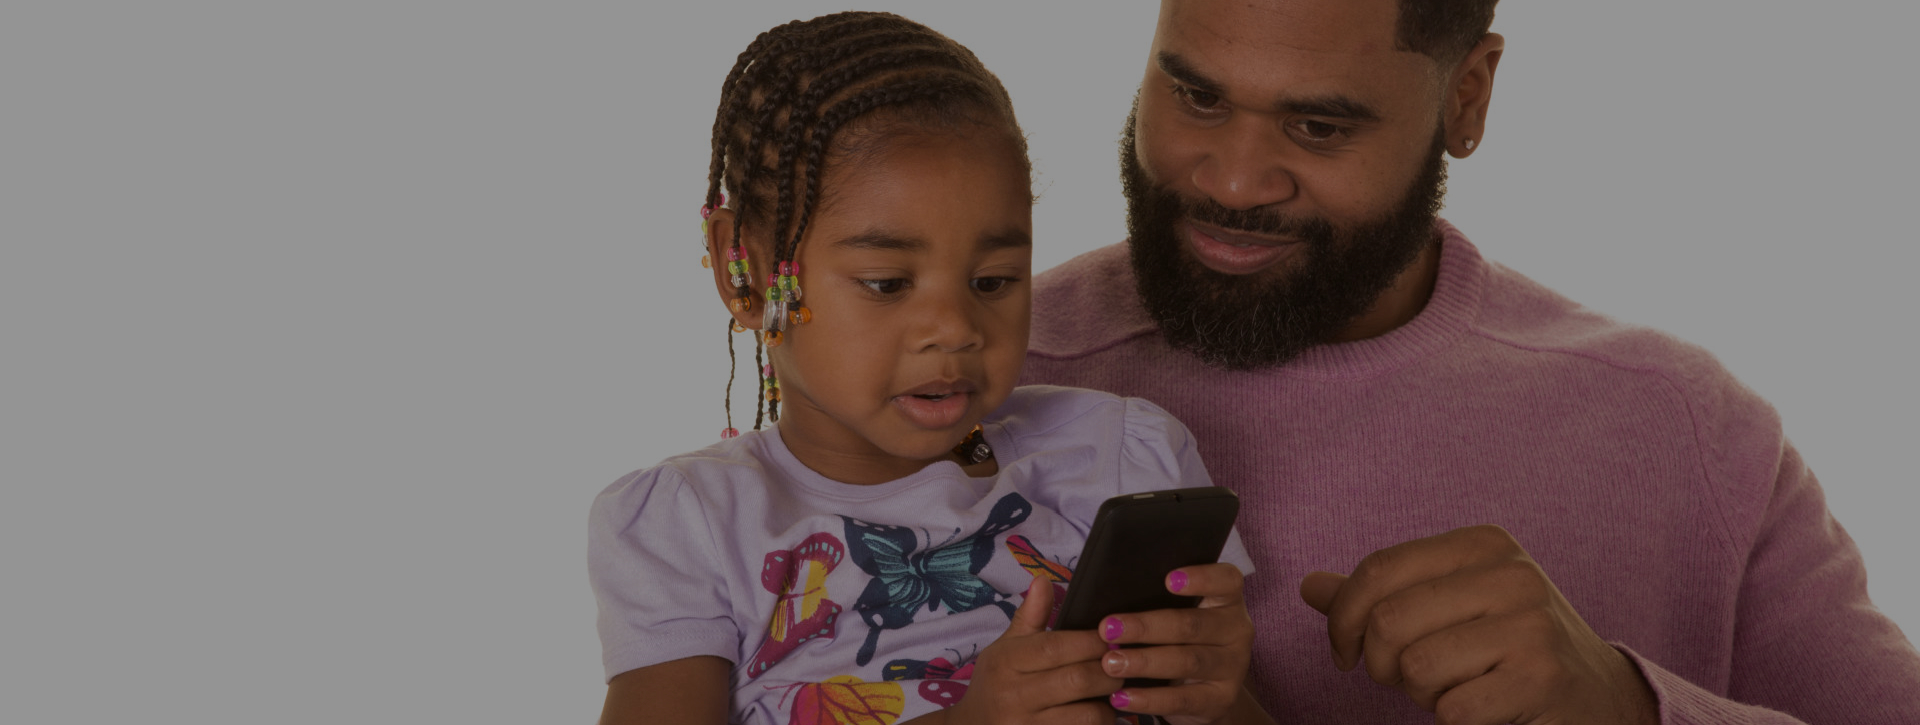 fahter and daughter using a smartphone